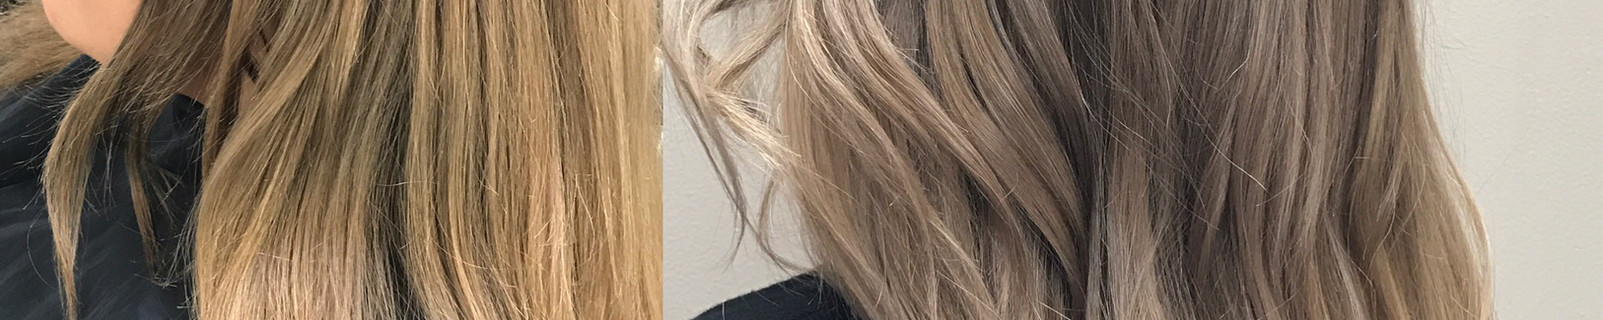 NATURAL OMBRES